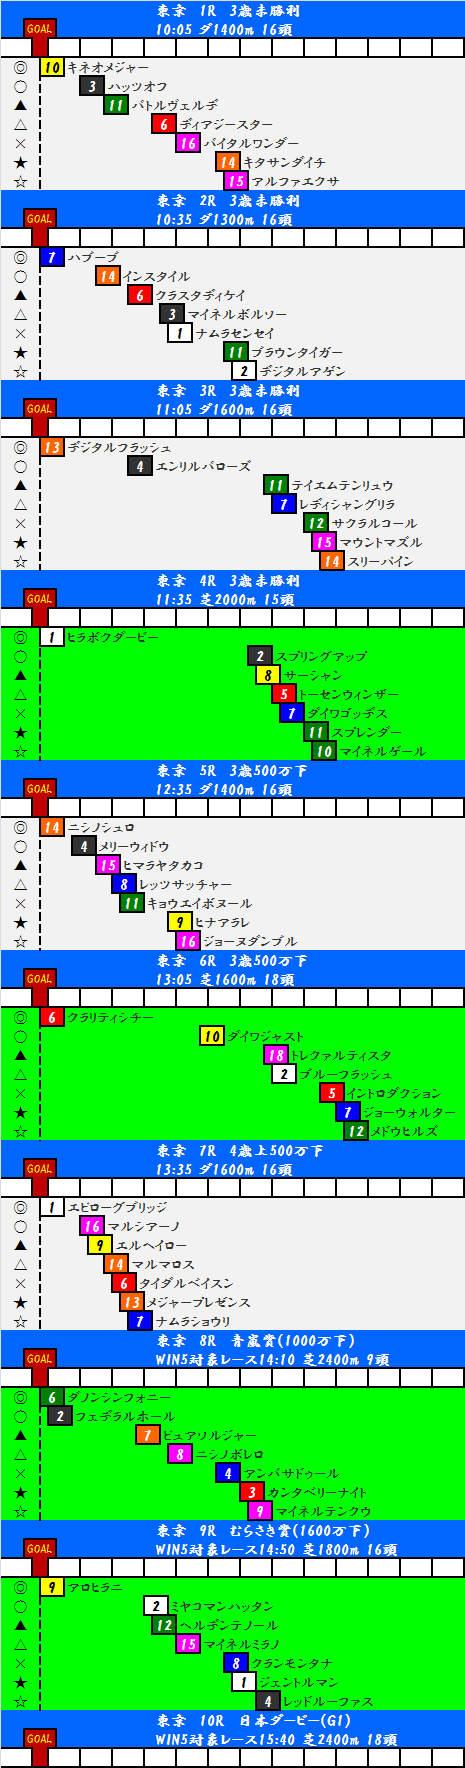 201406011.png